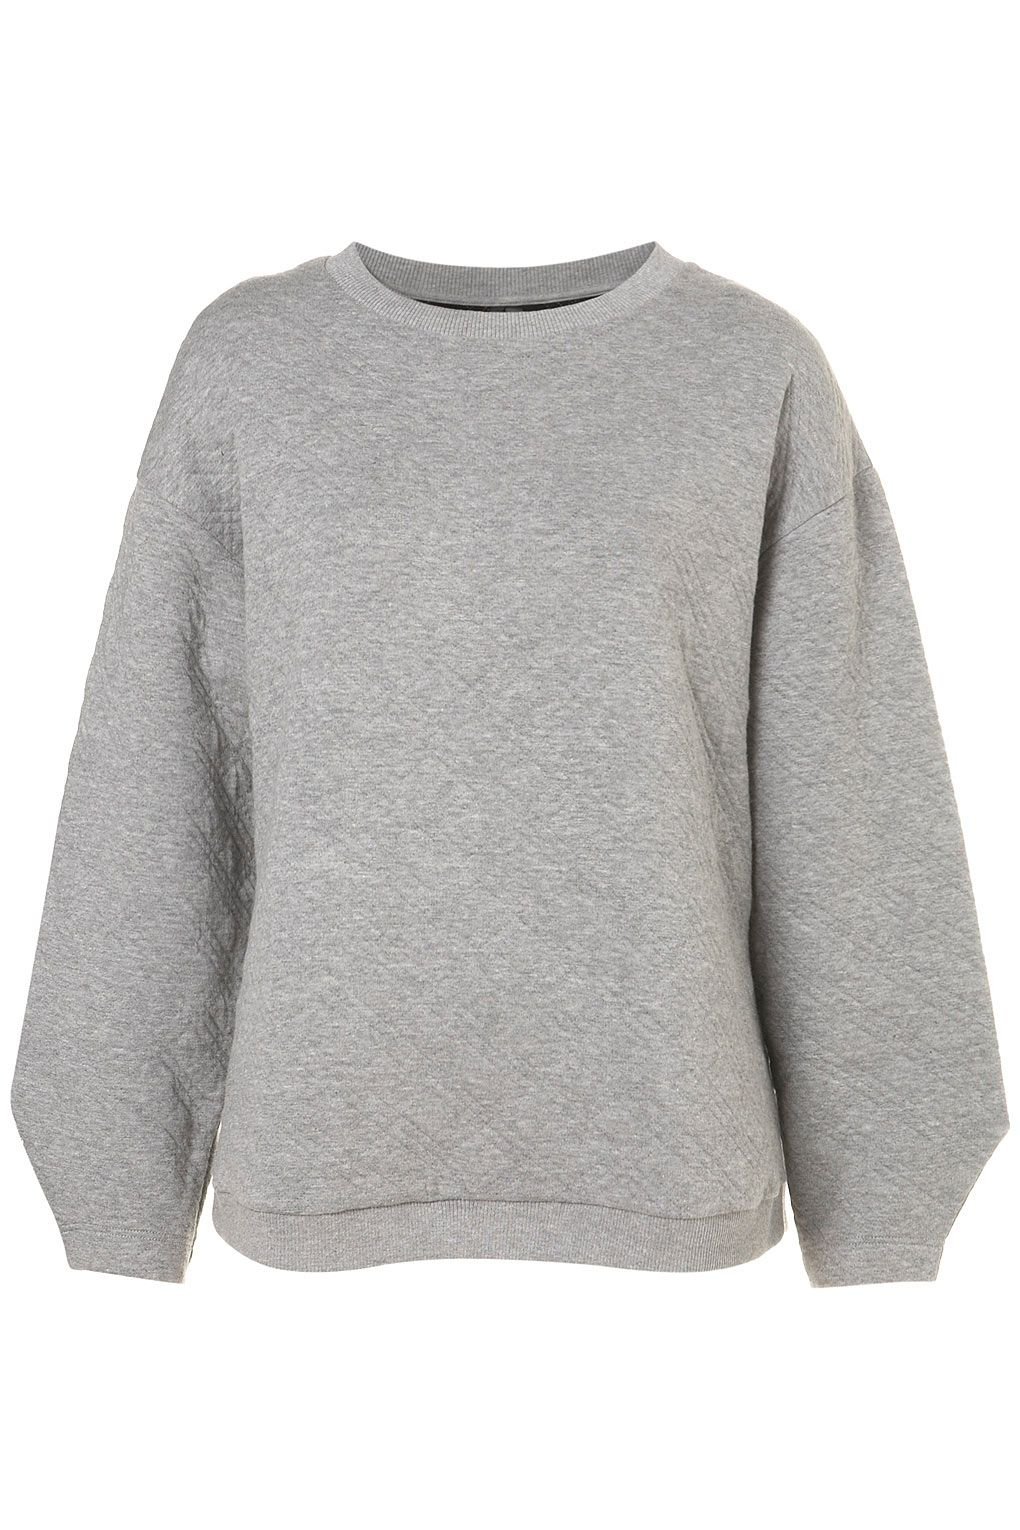 QUILTED SWEATER BY BOUTIQUE | Denims+Tees+Sweaters | Pinterest ... : quilted sweaters - Adamdwight.com